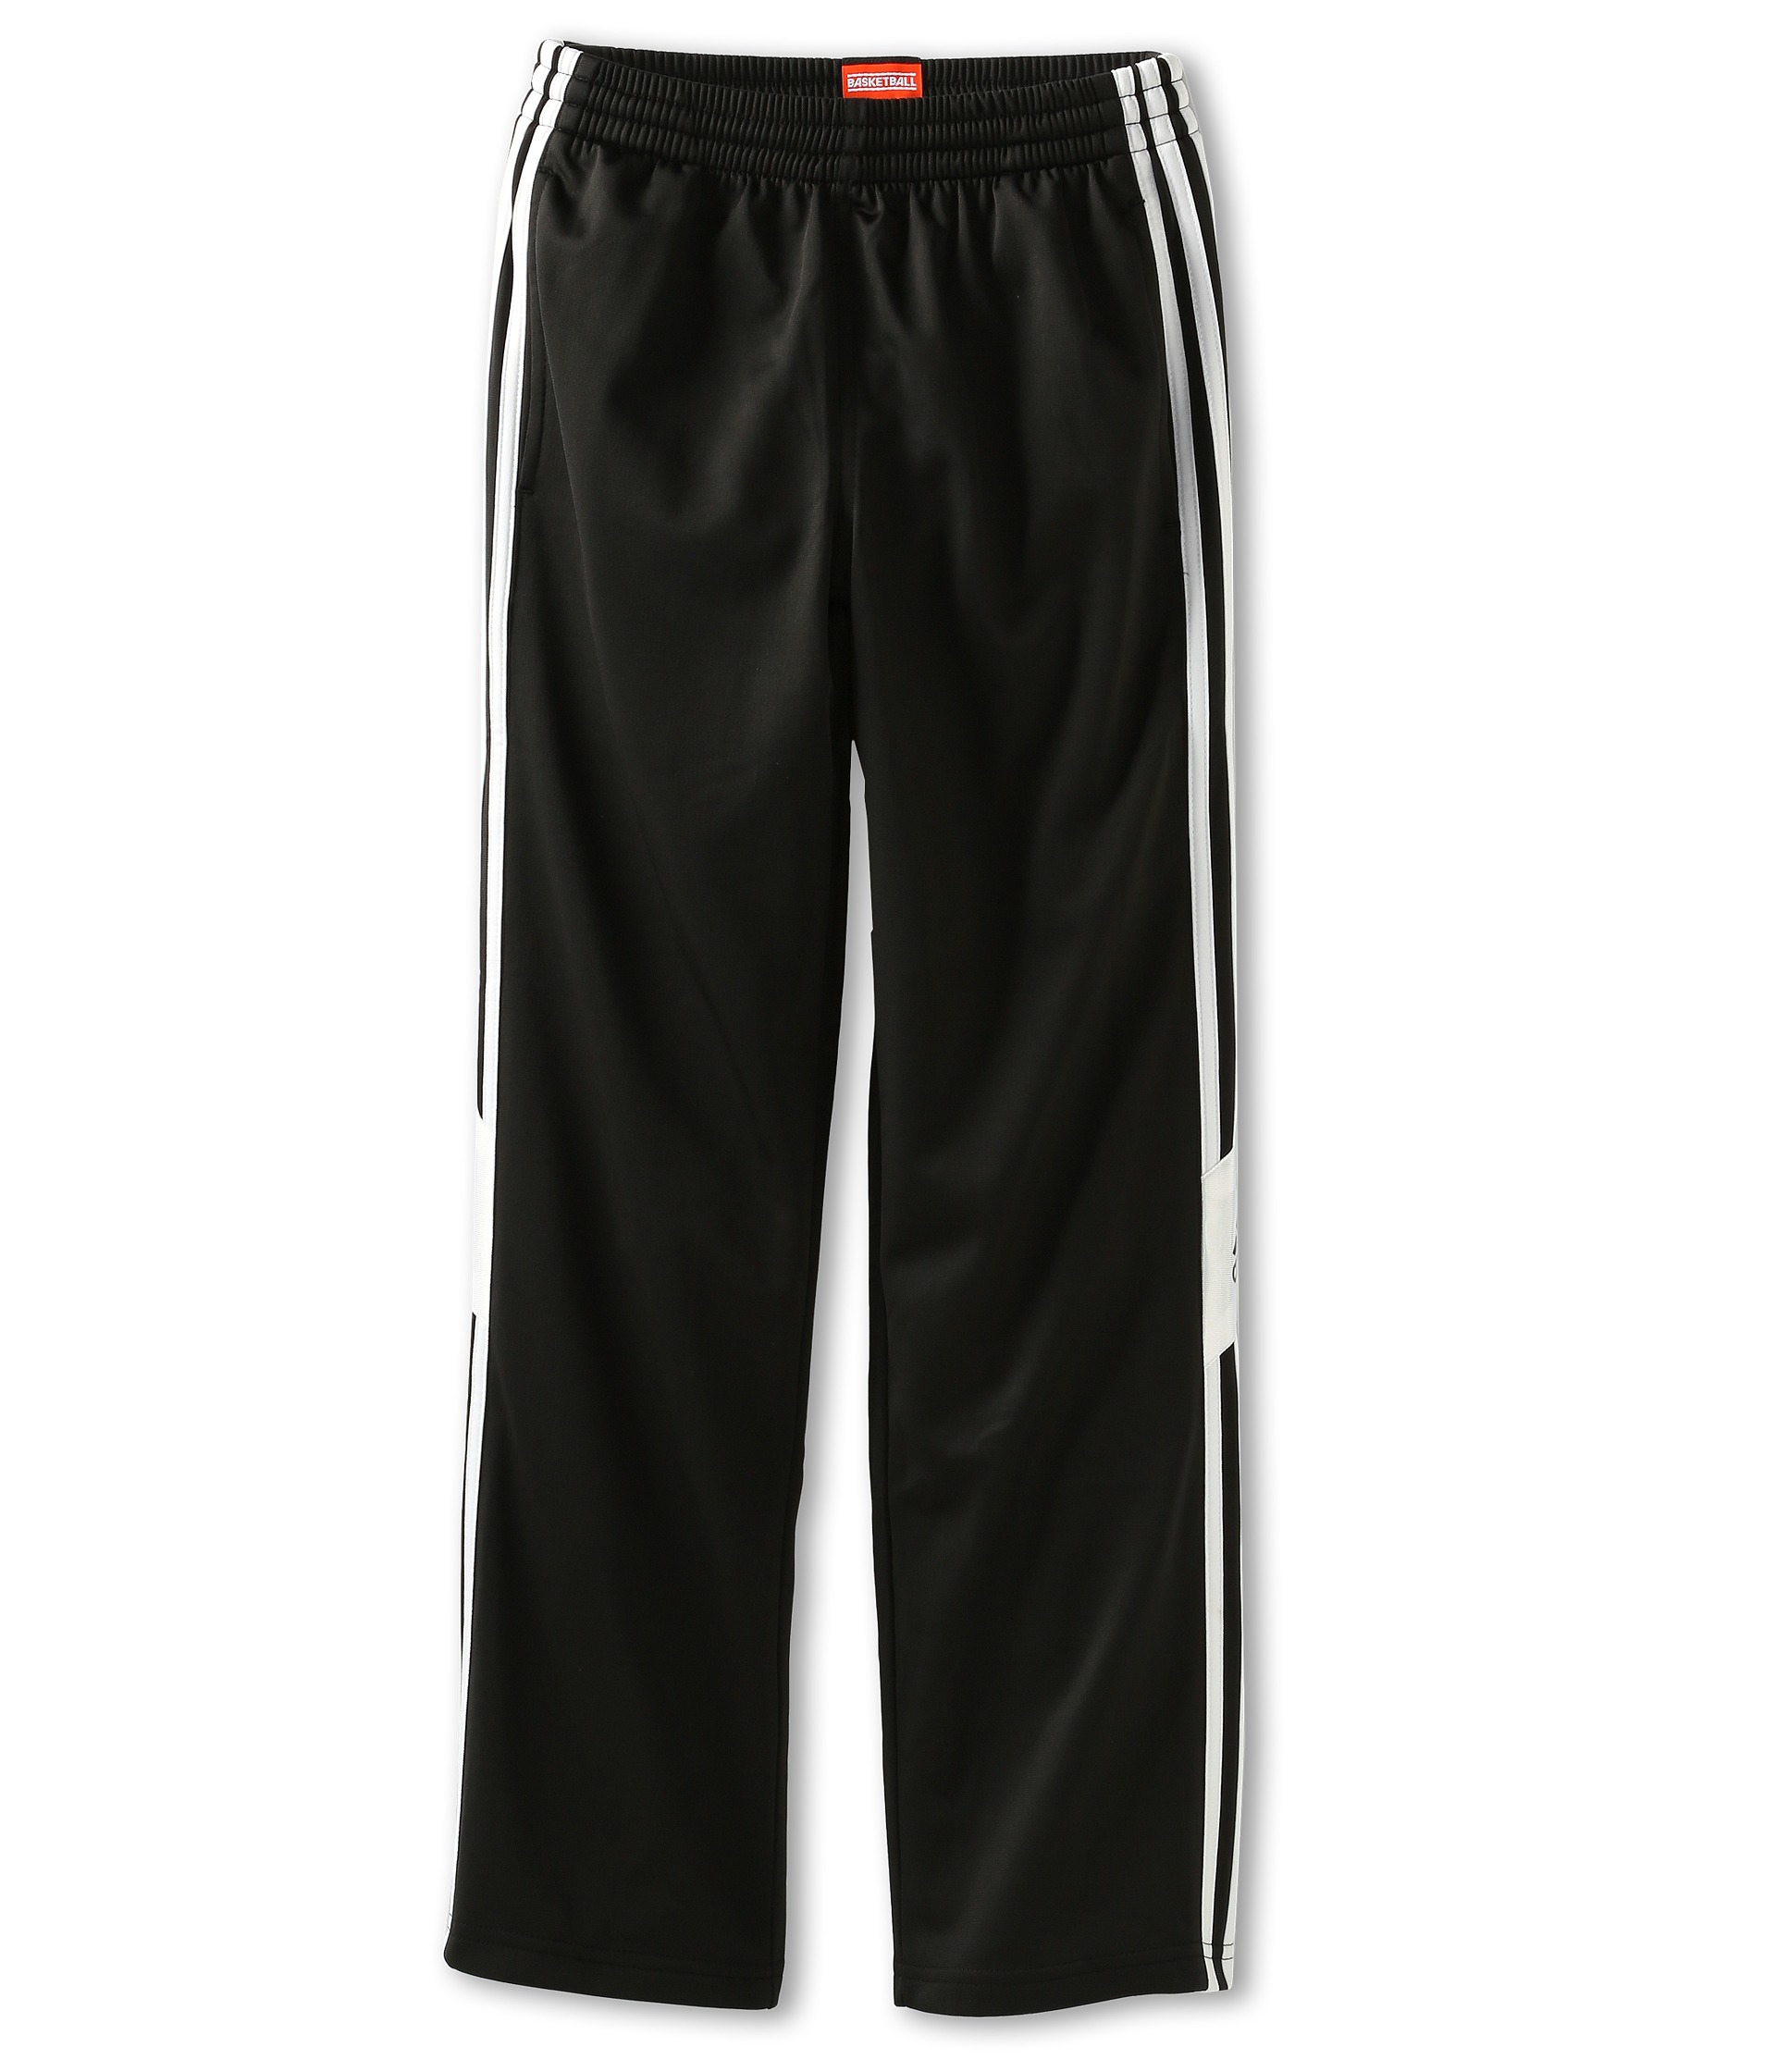 Design Youth Breakaway Warm Up Pants online. Free shipping, bulk discounts and no minimums or setups for custom Alleson pants. Free design templates. Over 10 million customer designs since